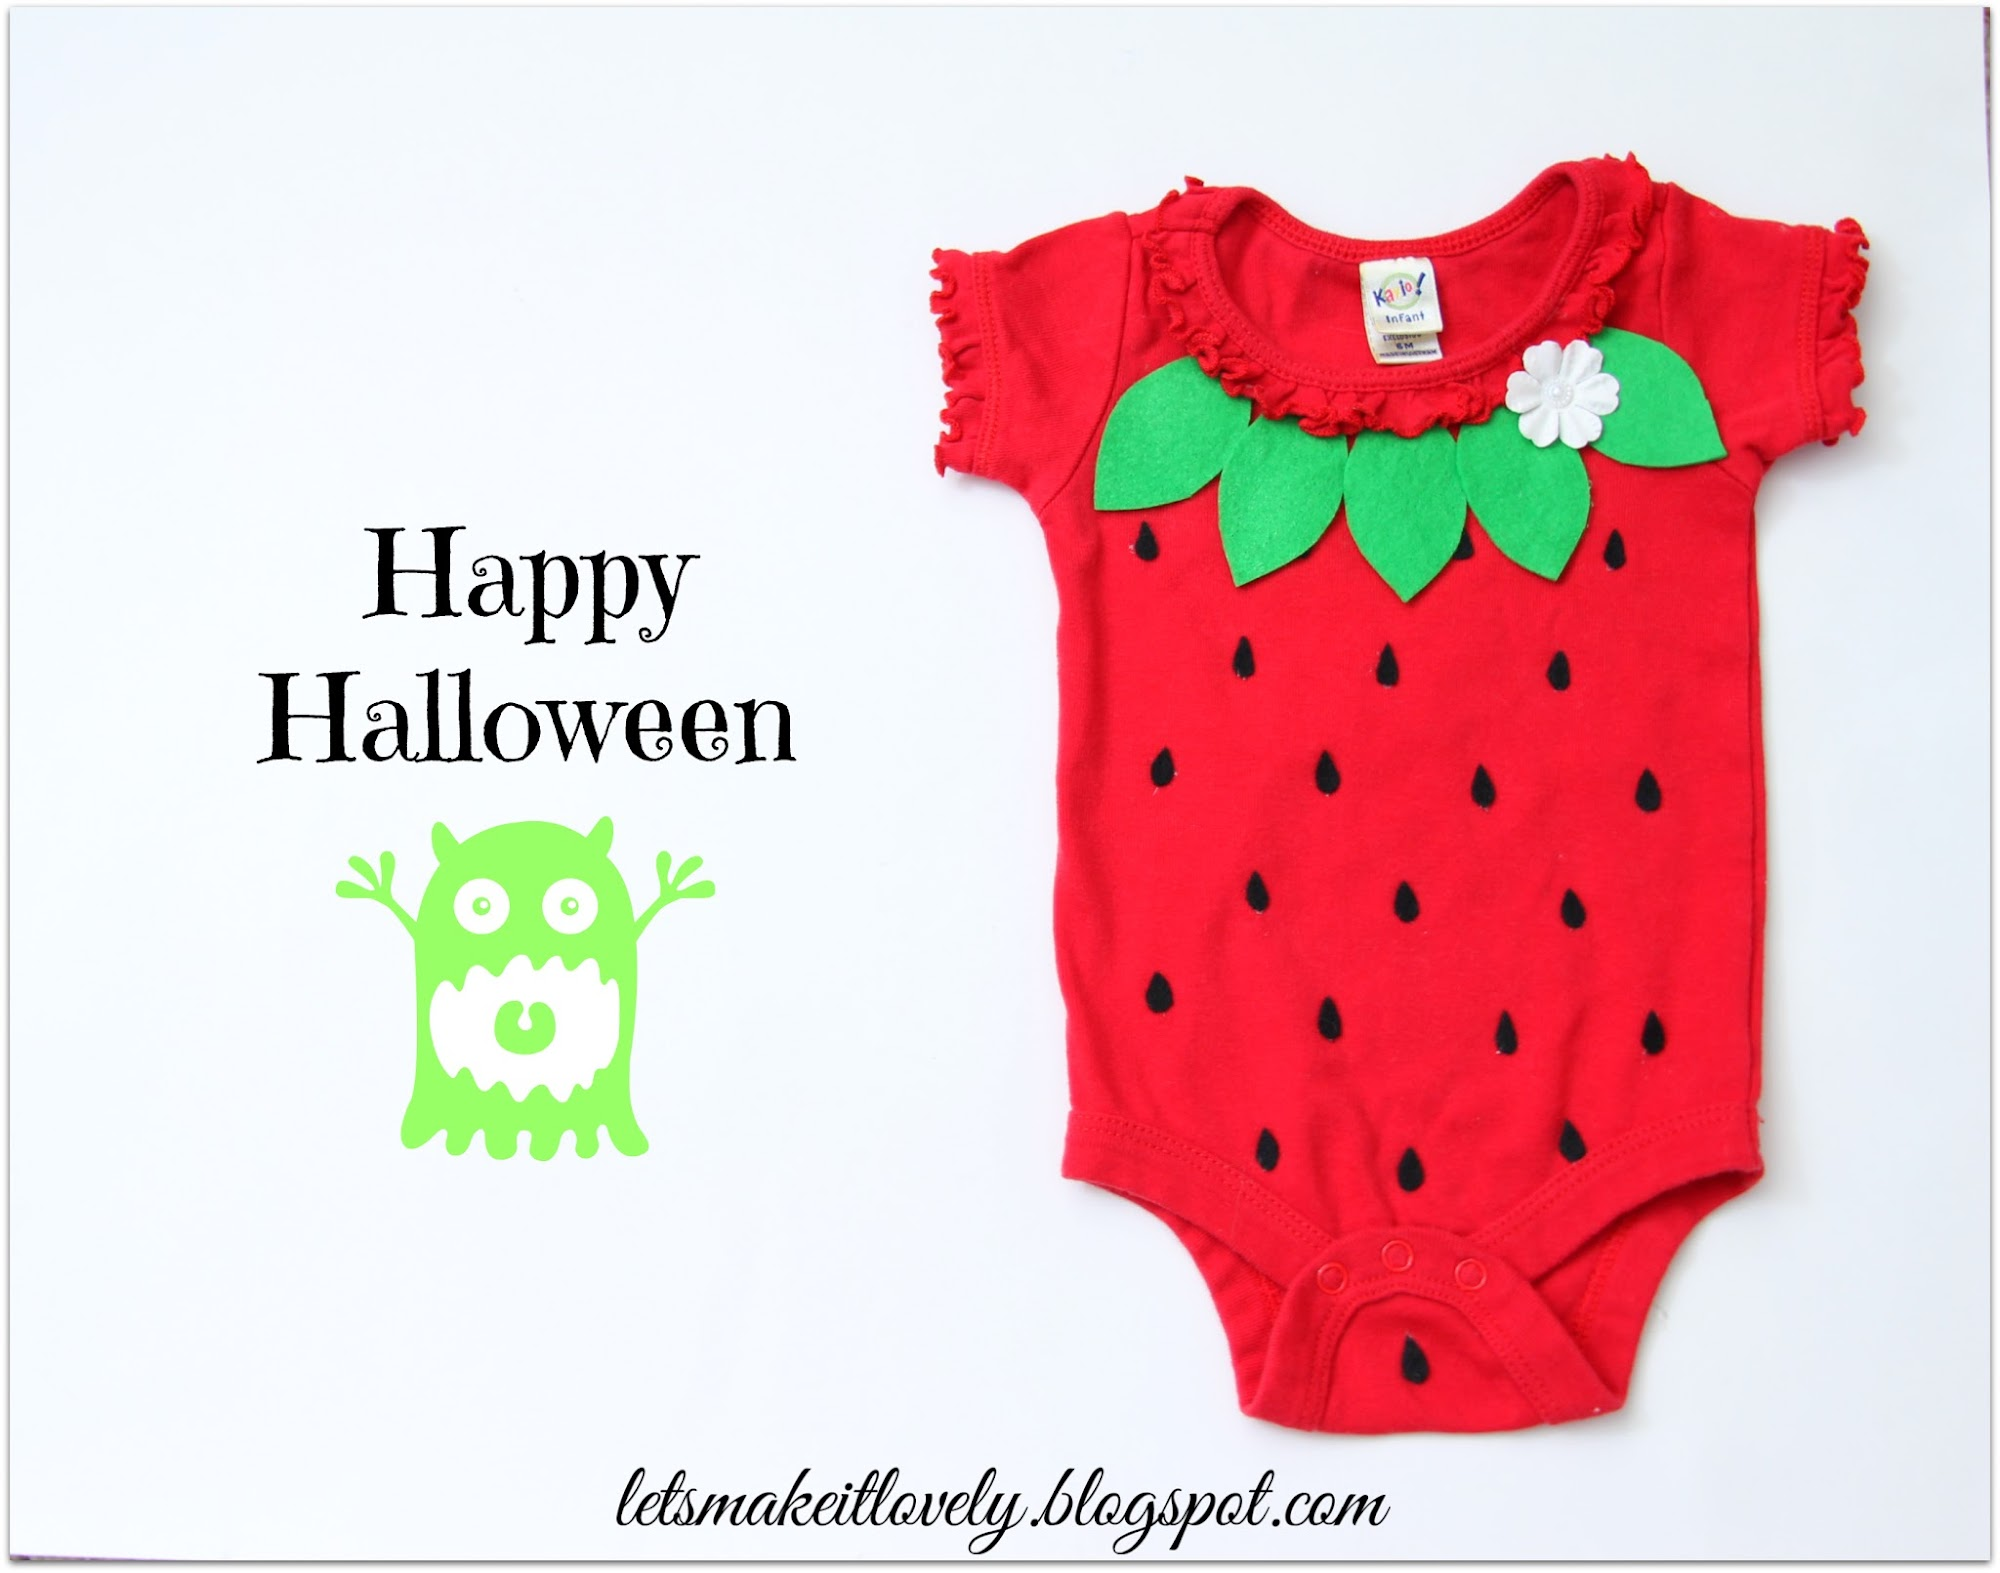 DIY Baby Strawberry Costume, DIY Simple Halloween Costume for Infant, Easy Handmade Costume